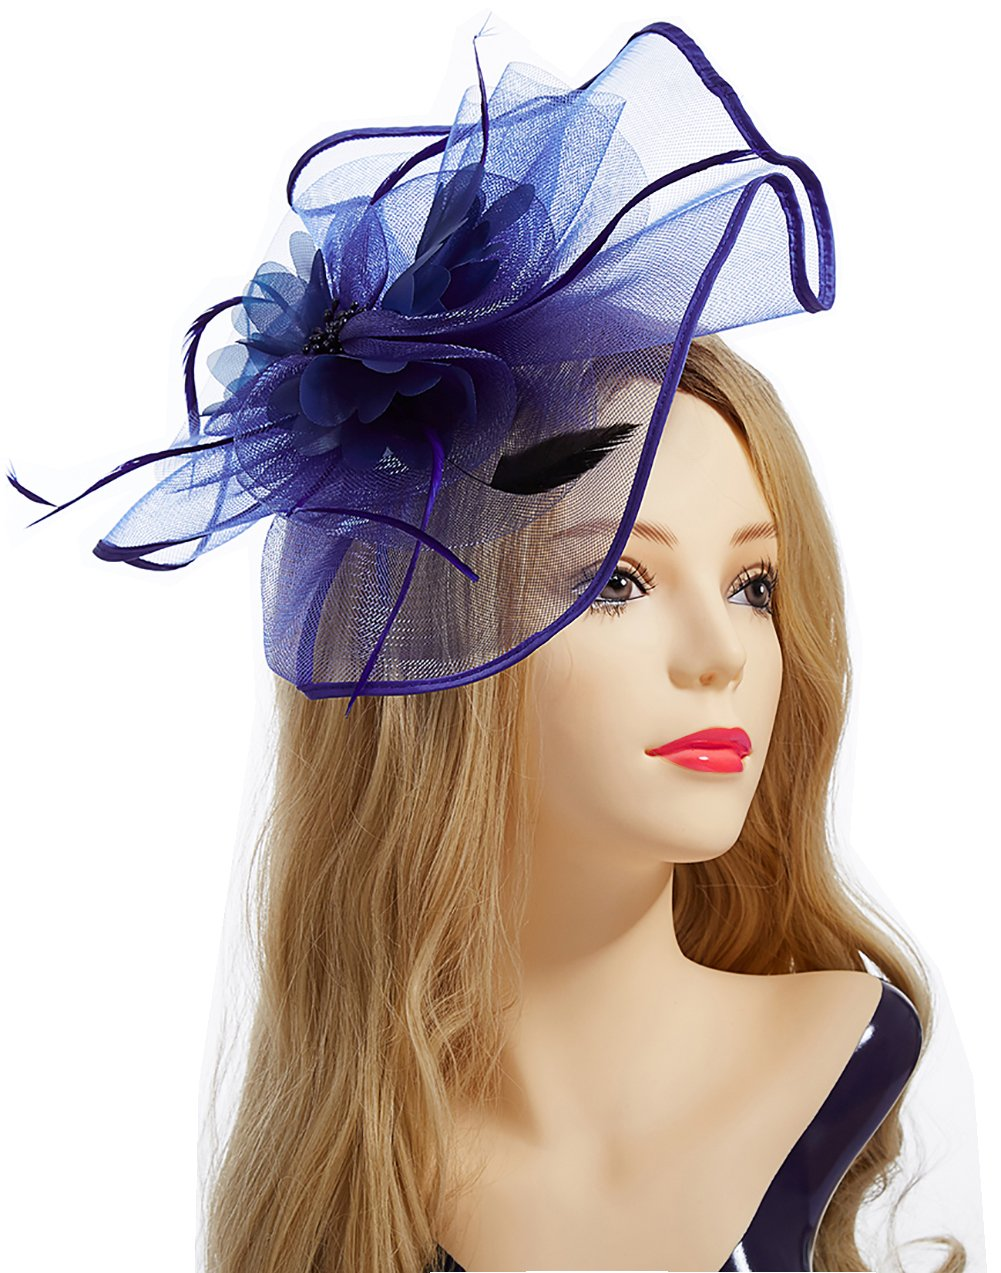 Aiskki Fascinator Hat, Feather Mesh Net Veil Party Hat Flower Derby Hat + Clip +Hairband + Gift Gloves for Women-Dark Blue